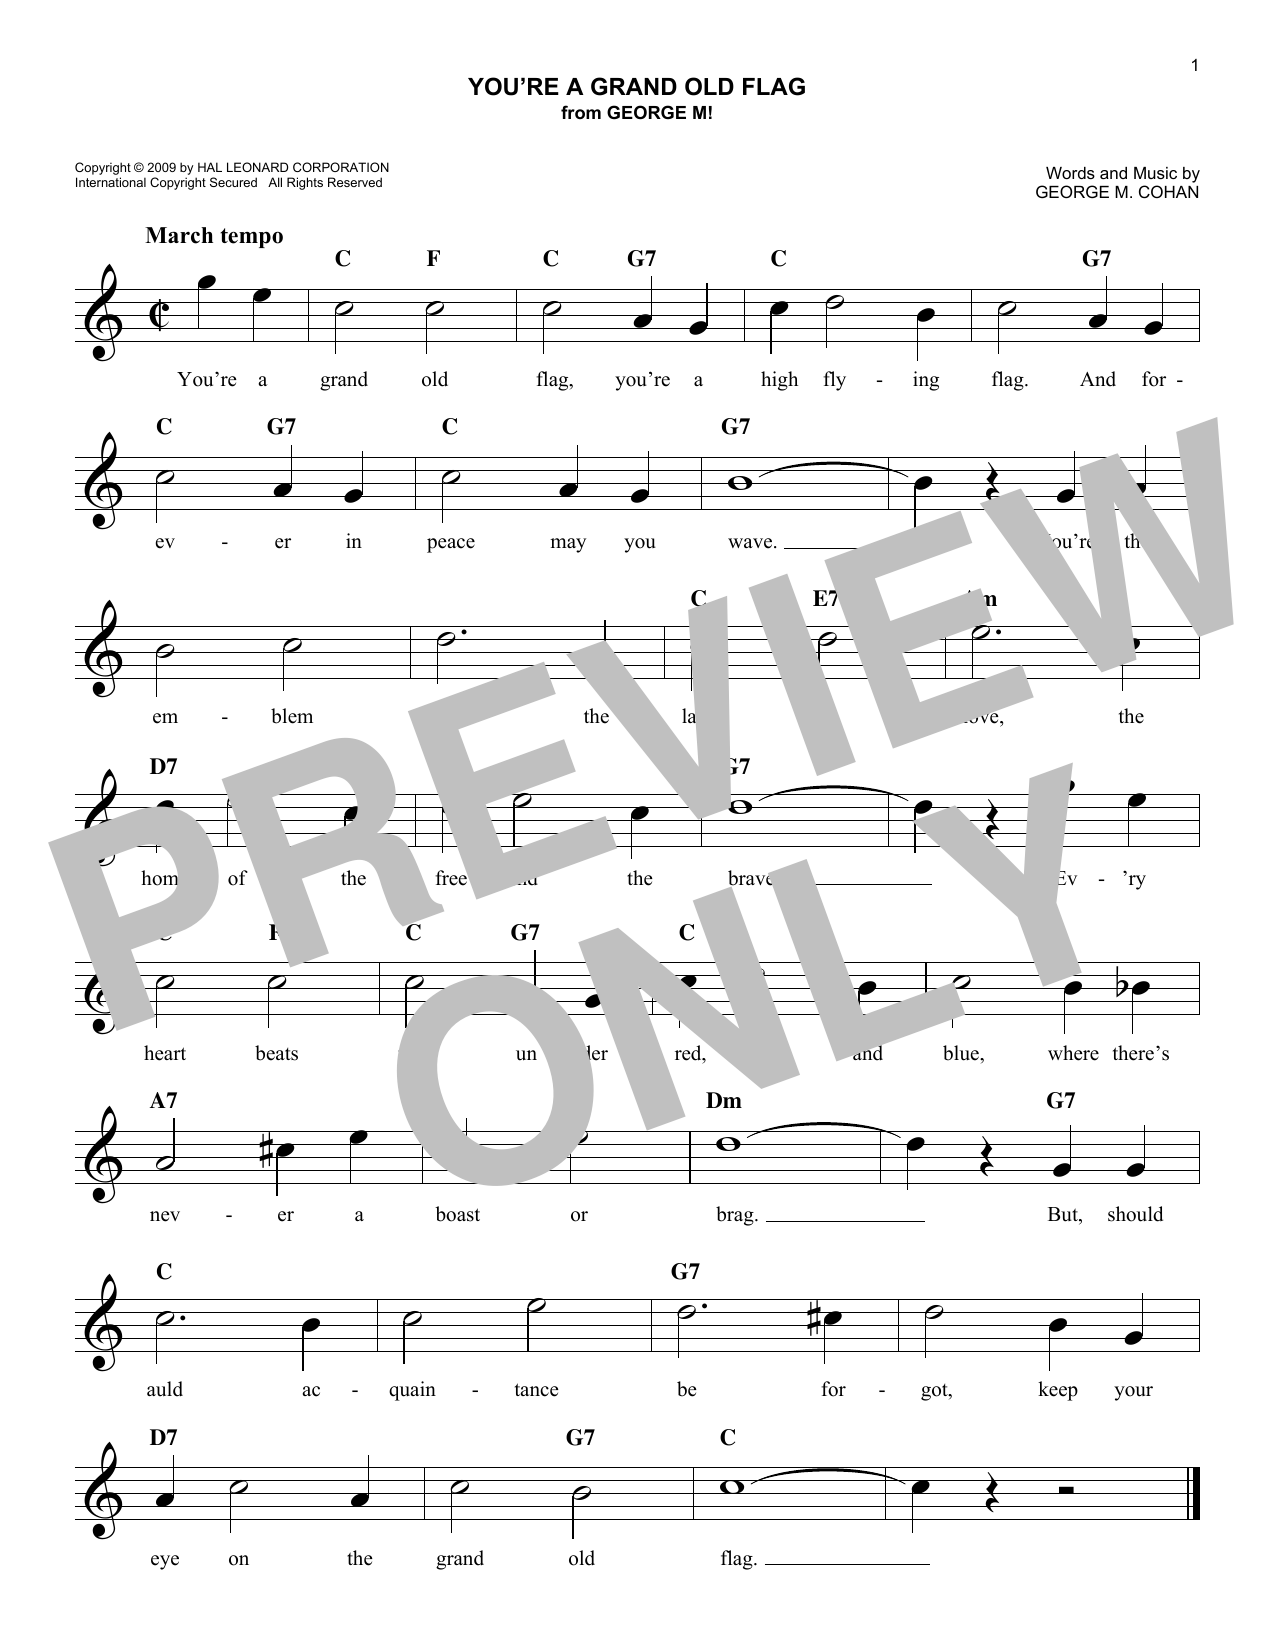 George Cohan You're A Grand Old Flag sheet music notes and chords. Download Printable PDF.